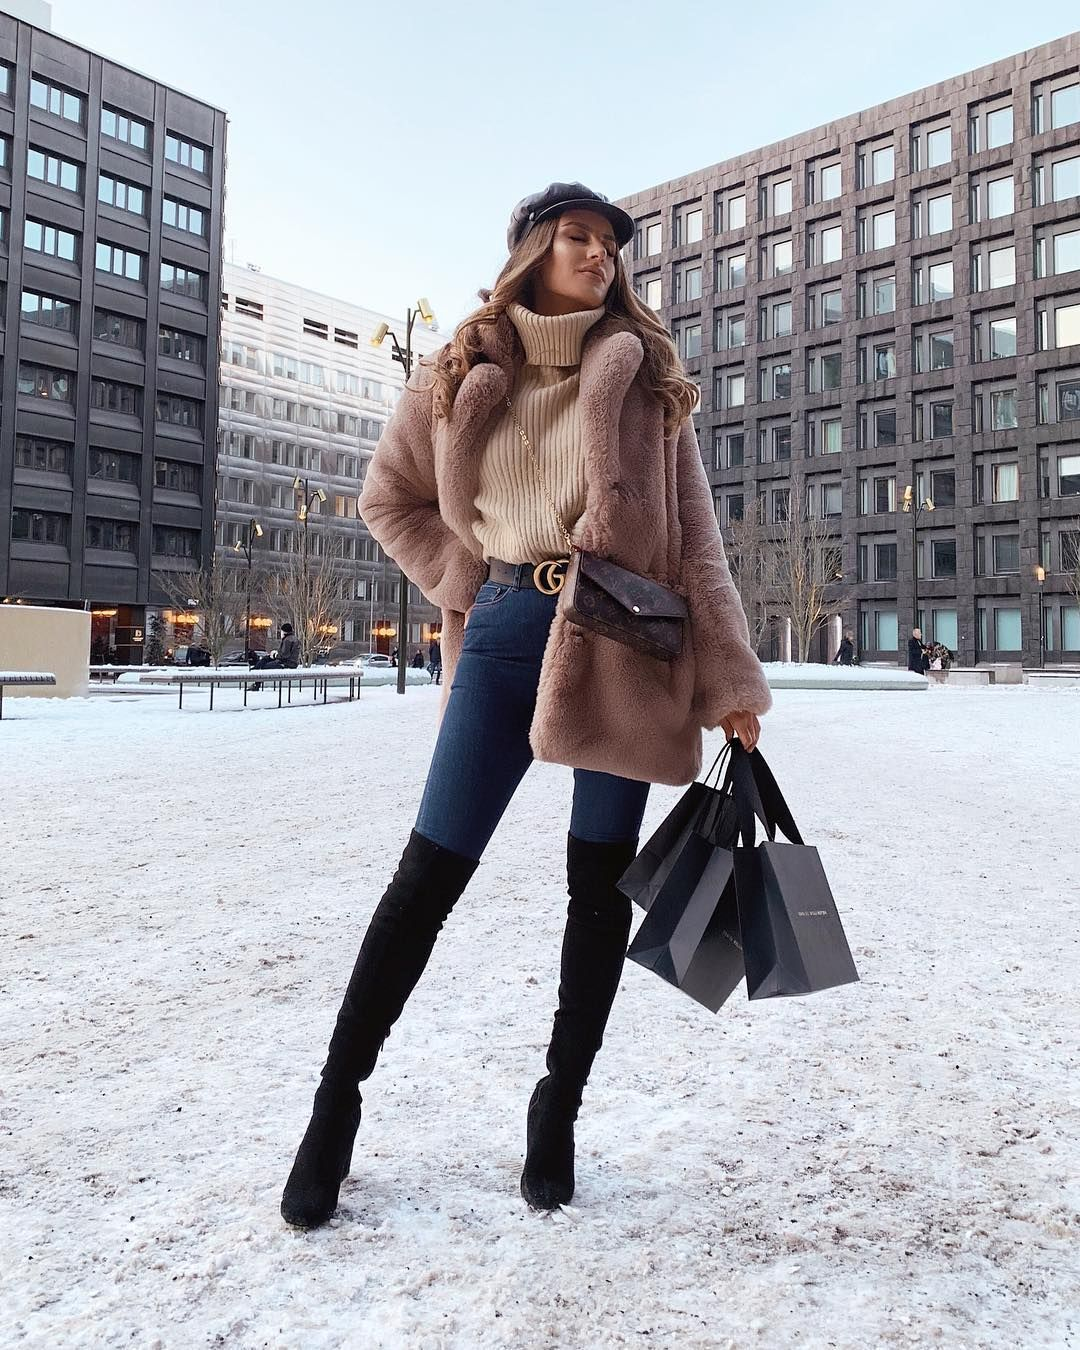 Paris Winter Fashion: Kim Kardashian West (@kimkardashian) • Instagram Photos